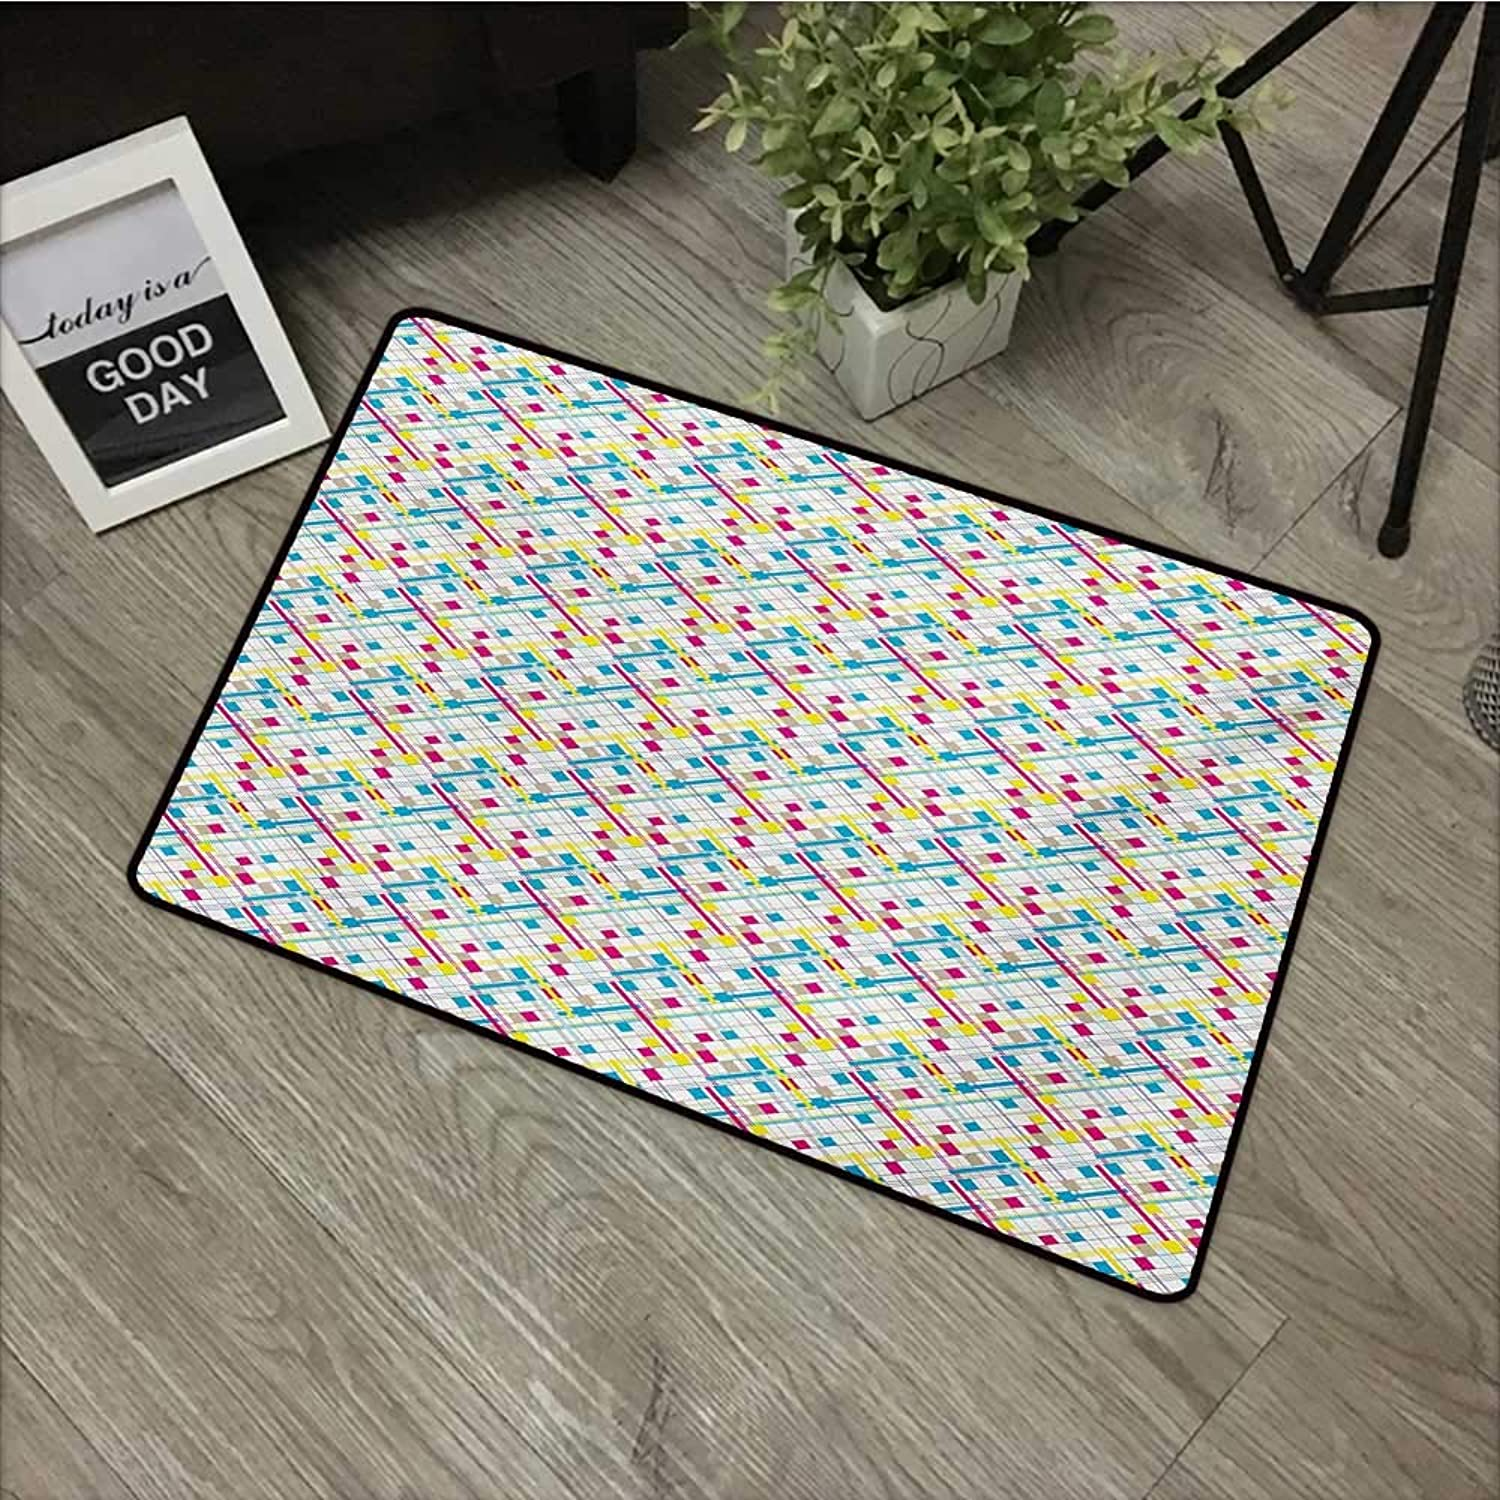 Bathroom Door mat W35 x L59 INCH Abstract,colorful Square Line and Stripe Cubism Inspired Grid Style Background Rectangles,Multicolor Non-Slip, with Non-Slip Backing,Non-Slip Door Mat Carpet